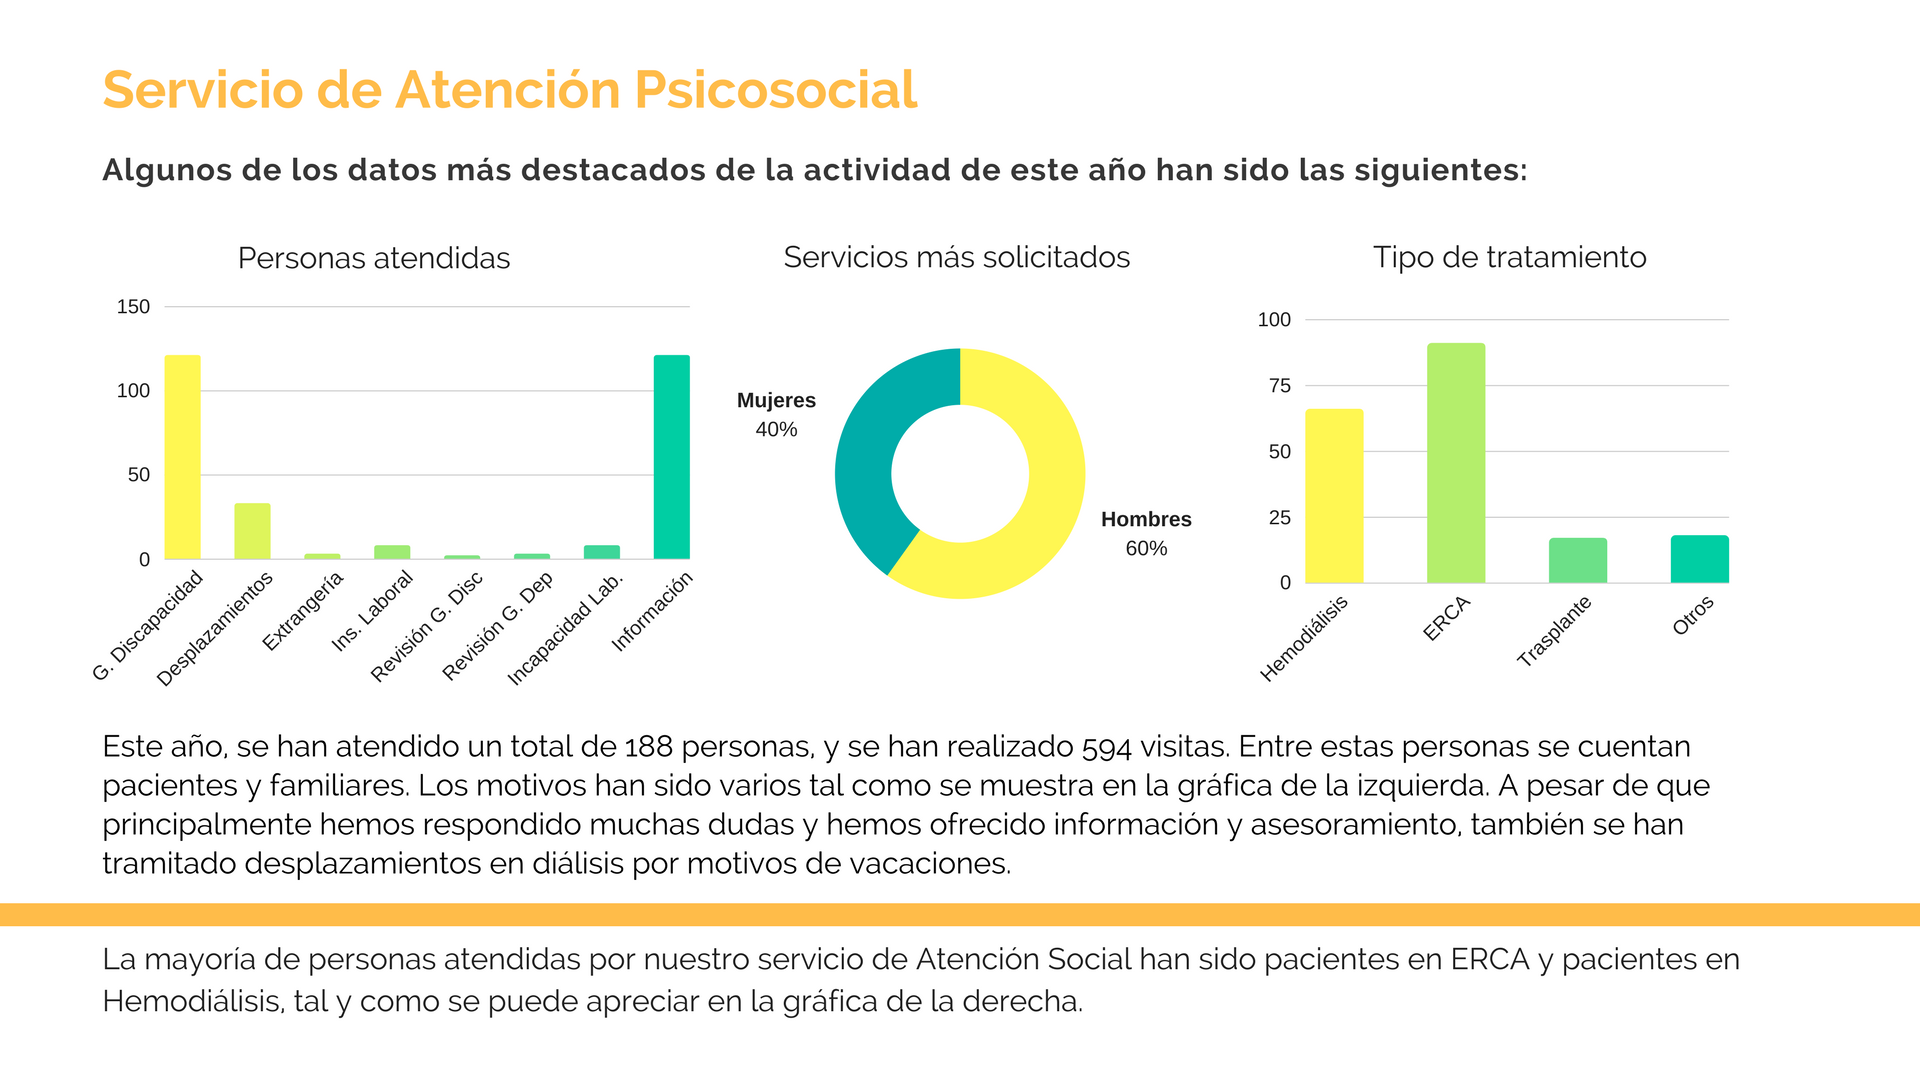 At PsicoSocial 17 CAST